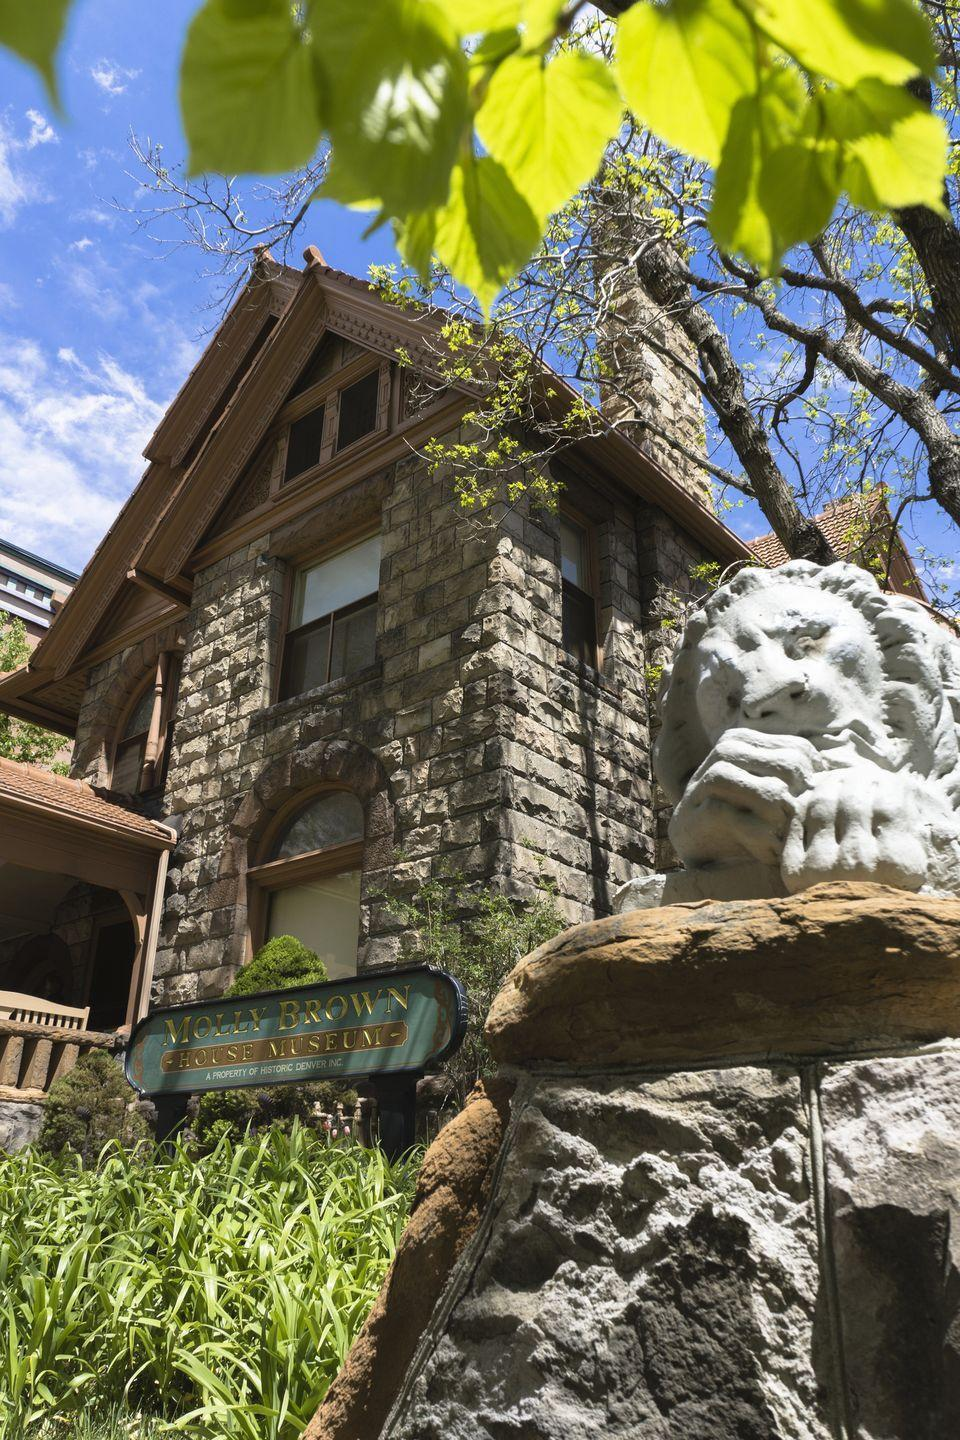 """<p>For a twilight ghost tour of the Mile High City, you'll want to check out this two-hour option, during which you'll travel between Sheedy Mansion and Poets Row, among other creepy spots, while listening to tales of unsolved mysteries and murders. </p><p><a class=""""link rapid-noclick-resp"""" href=""""https://go.redirectingat.com?id=74968X1596630&url=https%3A%2F%2Fwww.tripadvisor.com%2FAttractionProductReview-g33388-d14965993-Twilight_Ghost_Tour-Denver_Colorado.html&sref=https%3A%2F%2Fwww.redbookmag.com%2Flife%2Fg37623207%2Fghost-tours-near-me%2F"""" rel=""""nofollow noopener"""" target=""""_blank"""" data-ylk=""""slk:LEARN MORE"""">LEARN MORE</a></p>"""